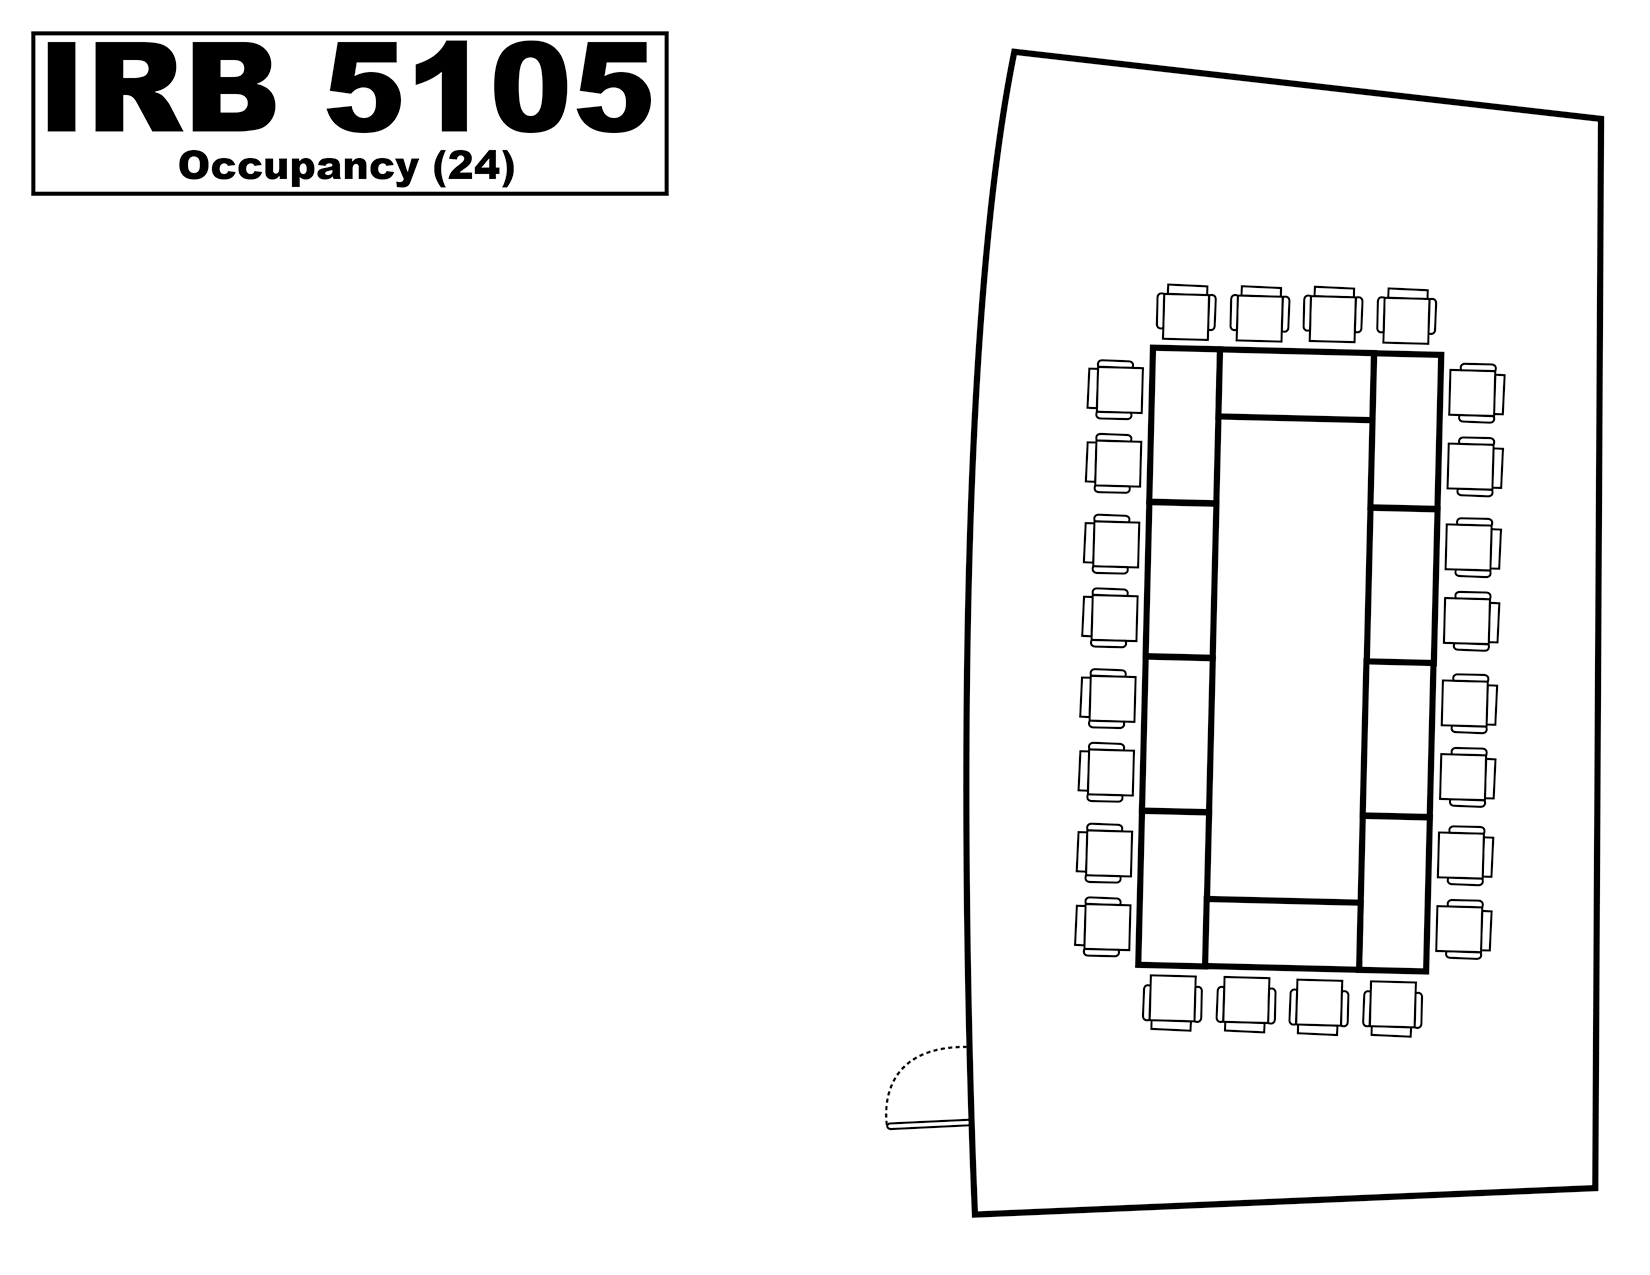 IRB5105 floorplan